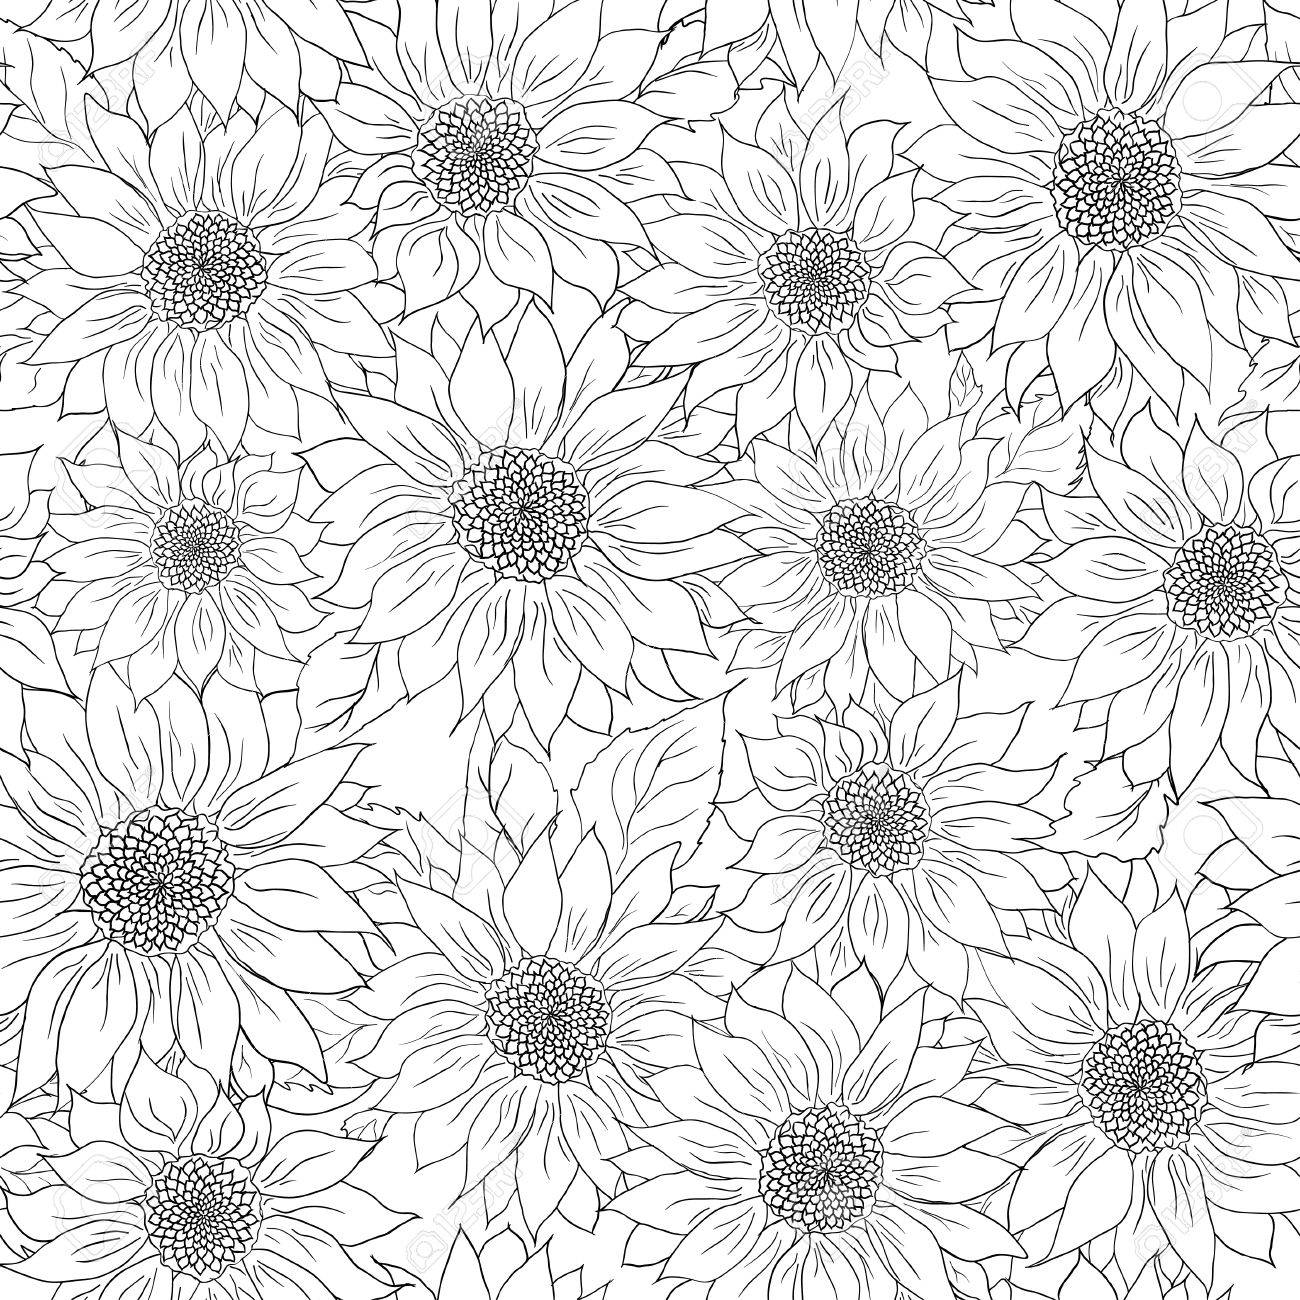 Hand Drawn Pattern Of Sunflowers Background Flower Sunflower